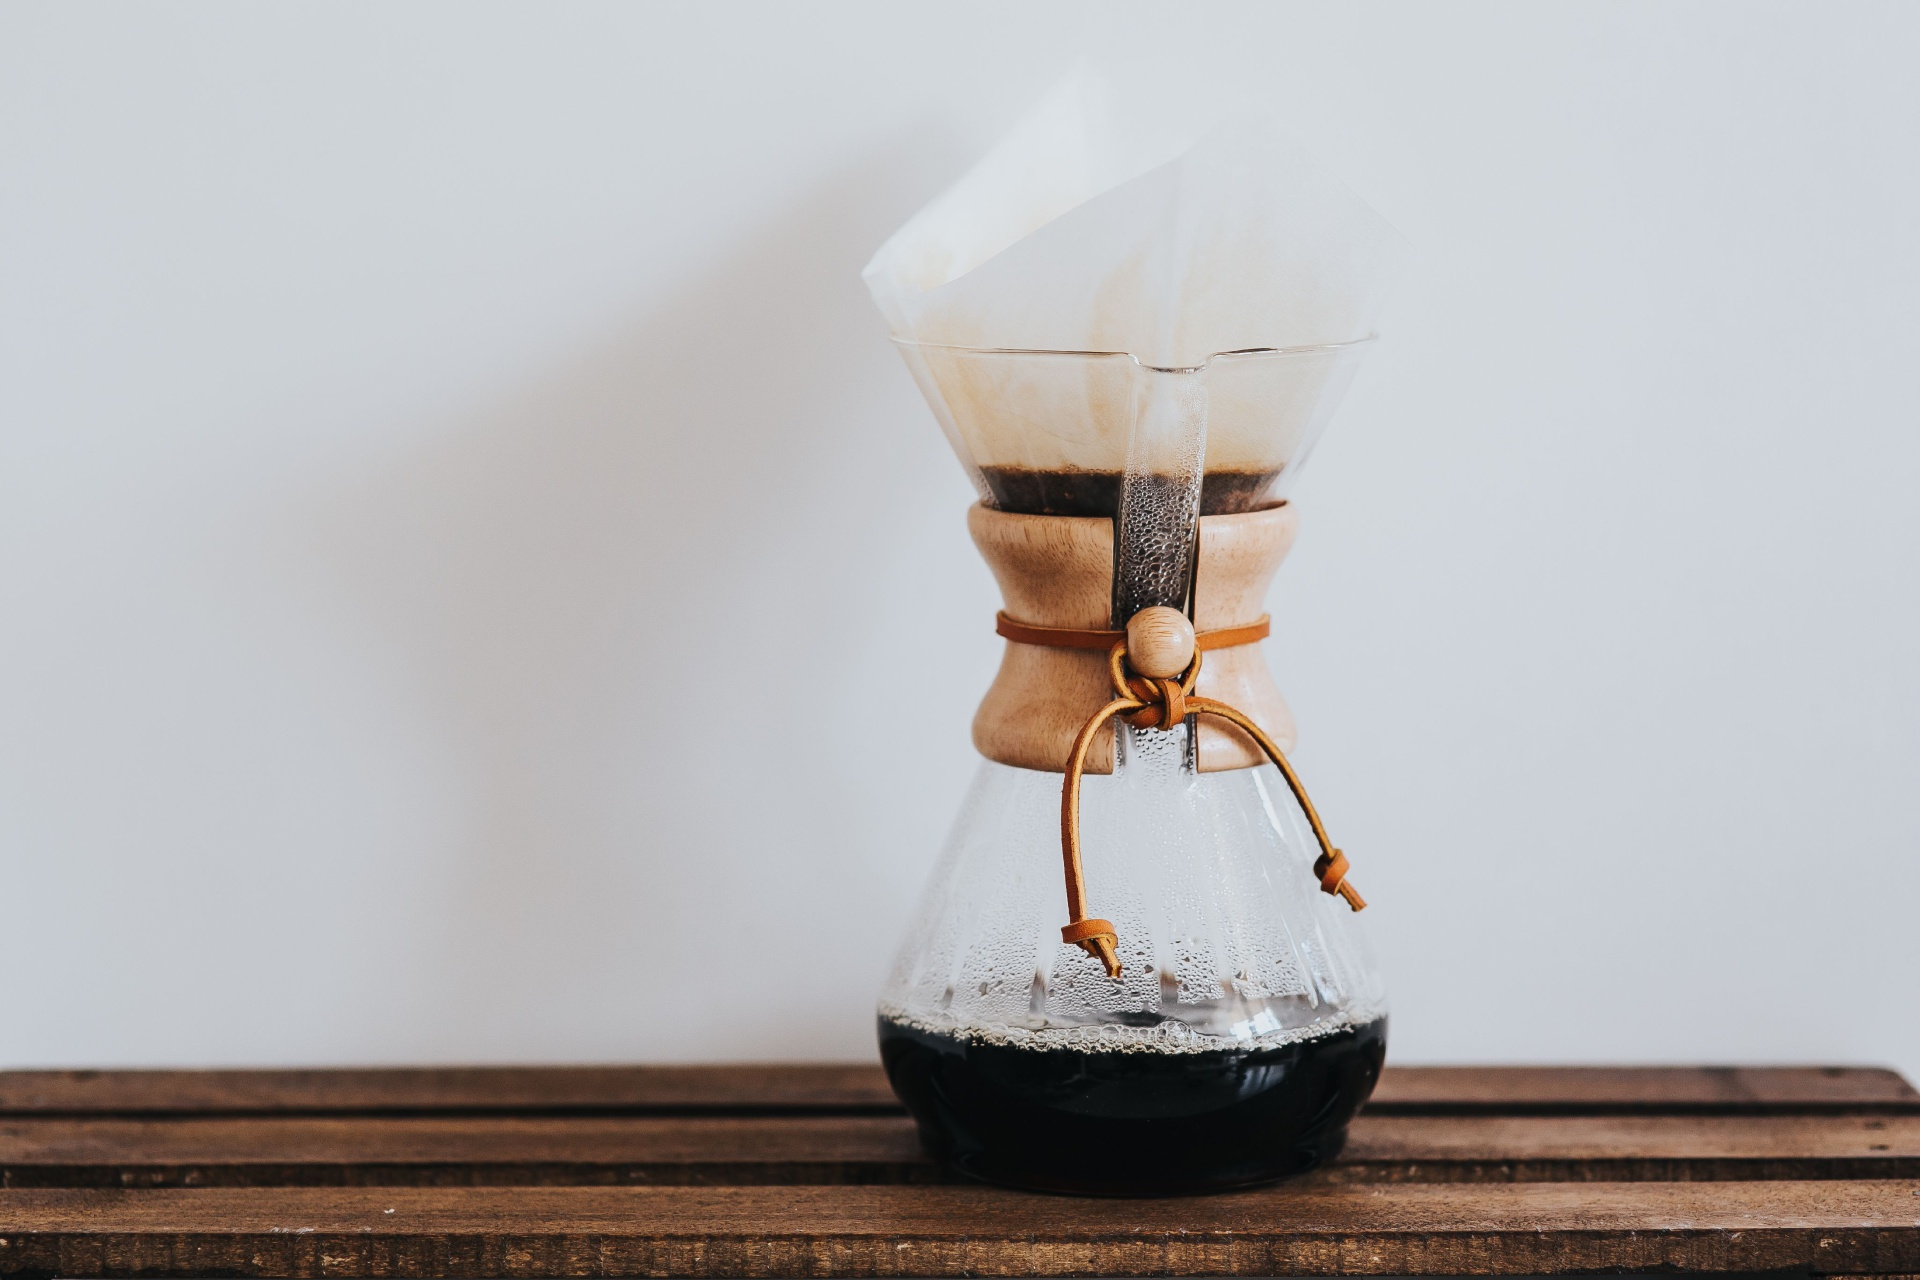 https://www.addressrealestate.com/media/images/blogs/24/2/b_kaboompics-pouring-hot-water-in-chemex.jpg